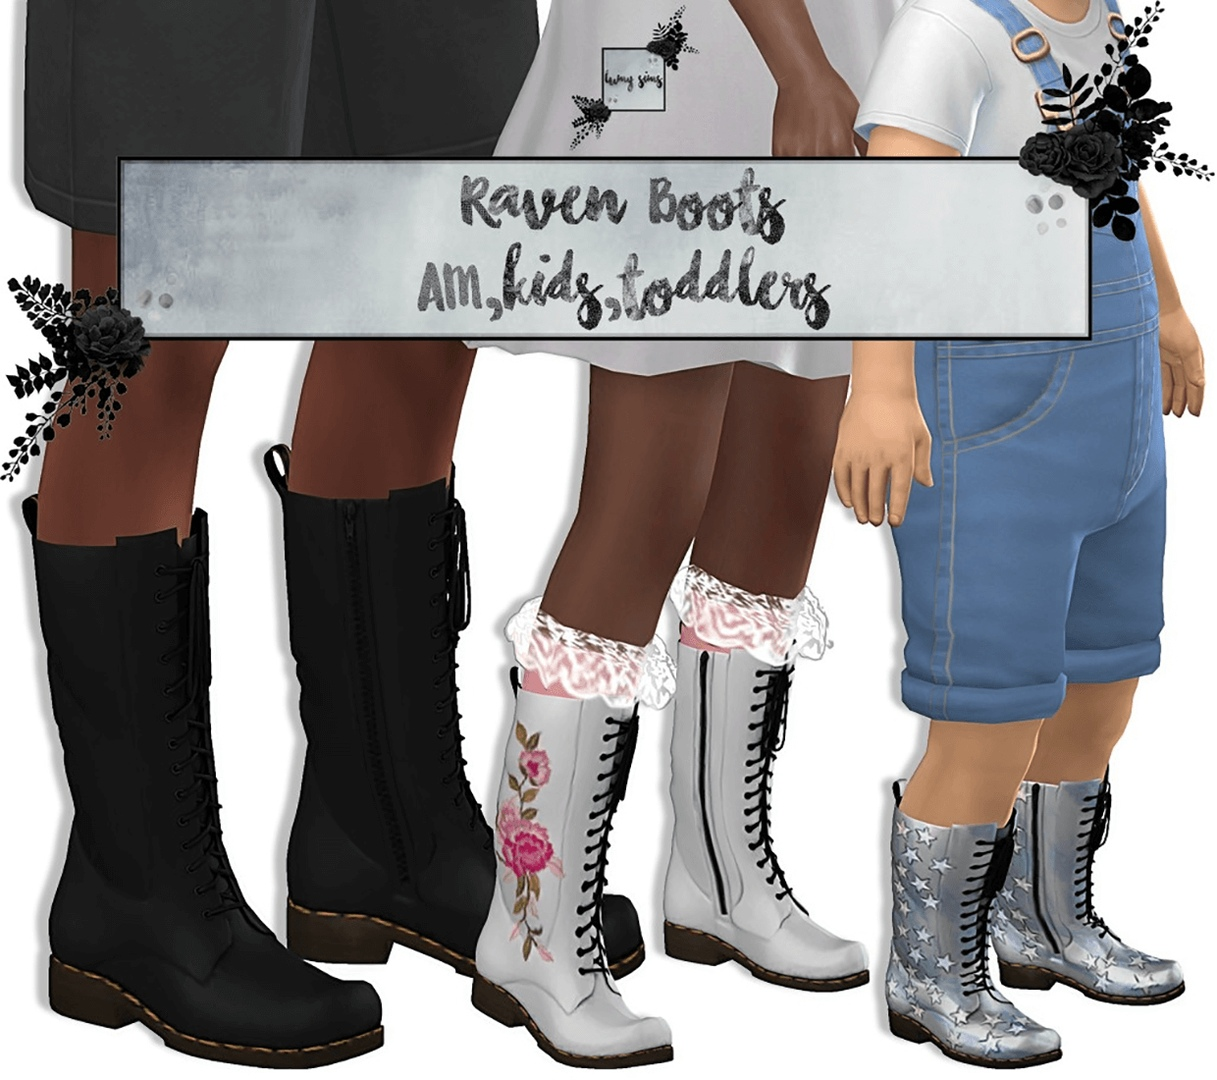 Raven Boots AM Kids Toddlers by Lumysims